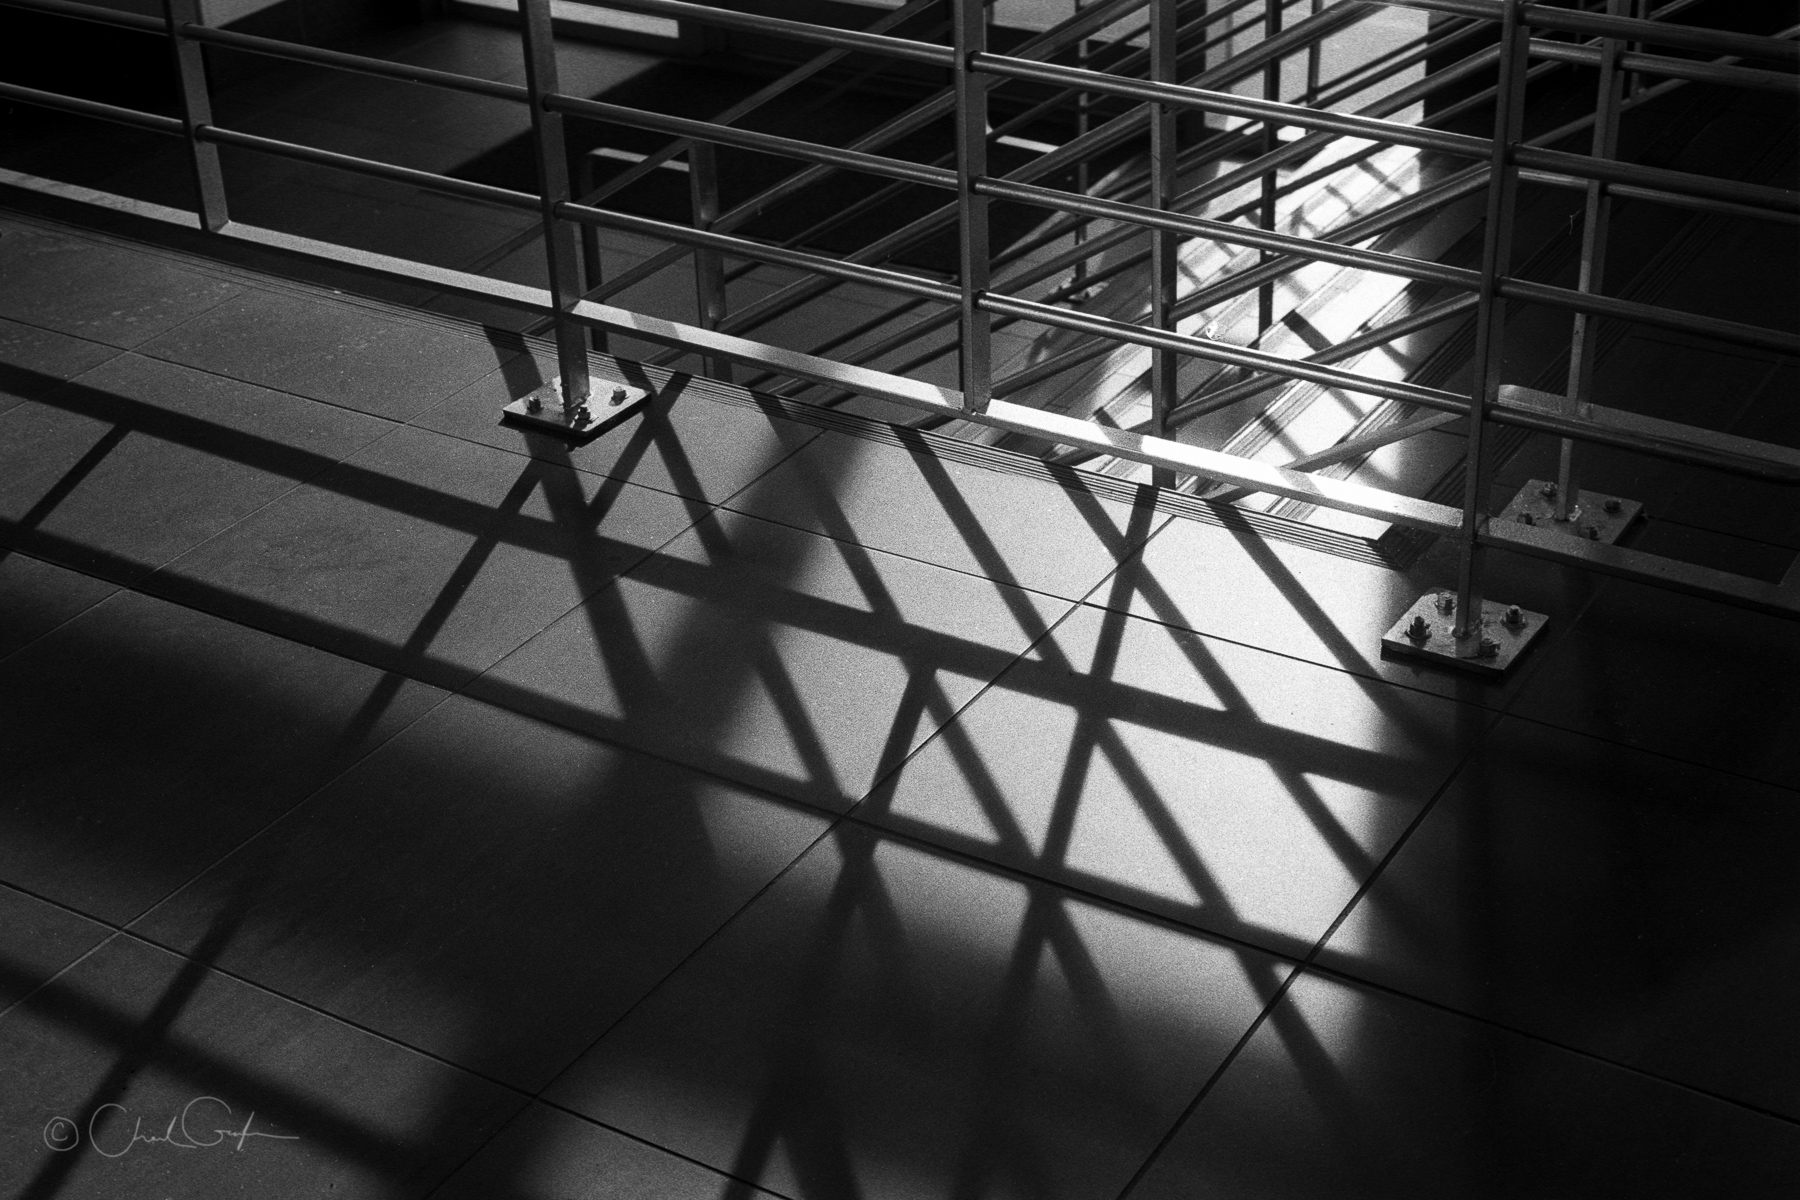 Sunlight casting shadows on station stairs by chad gayle image